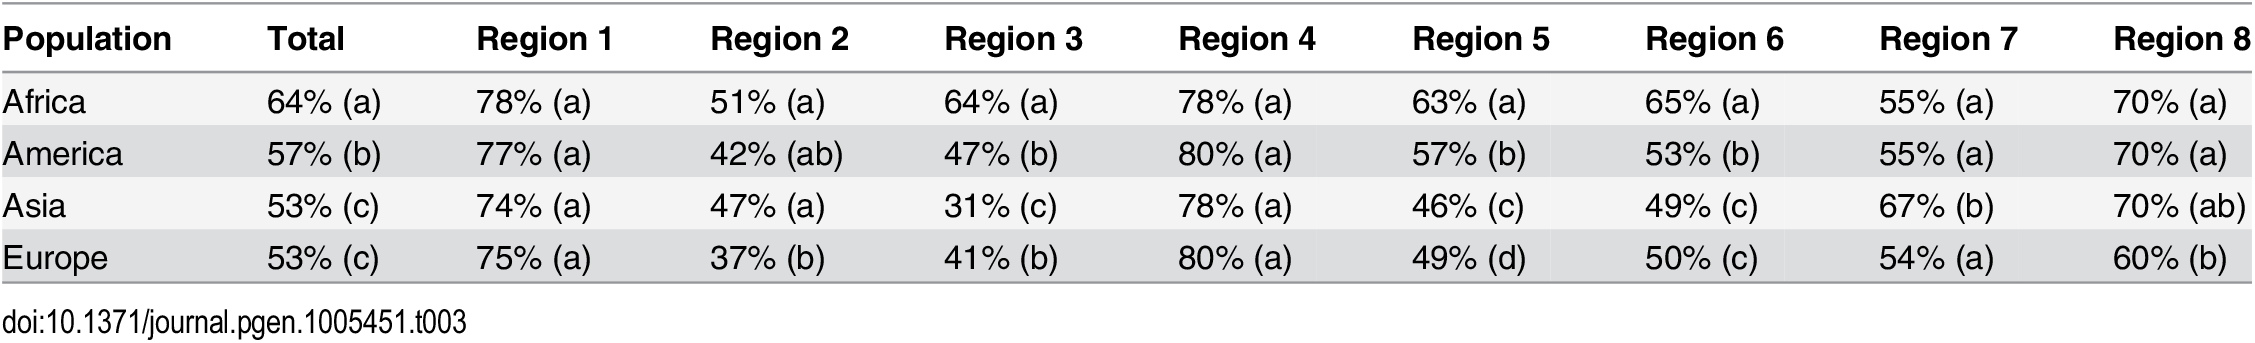 Average nucleotide diversity for each population group and low-ILS region, relative to the X chromosome average outside the low-ILS regions.